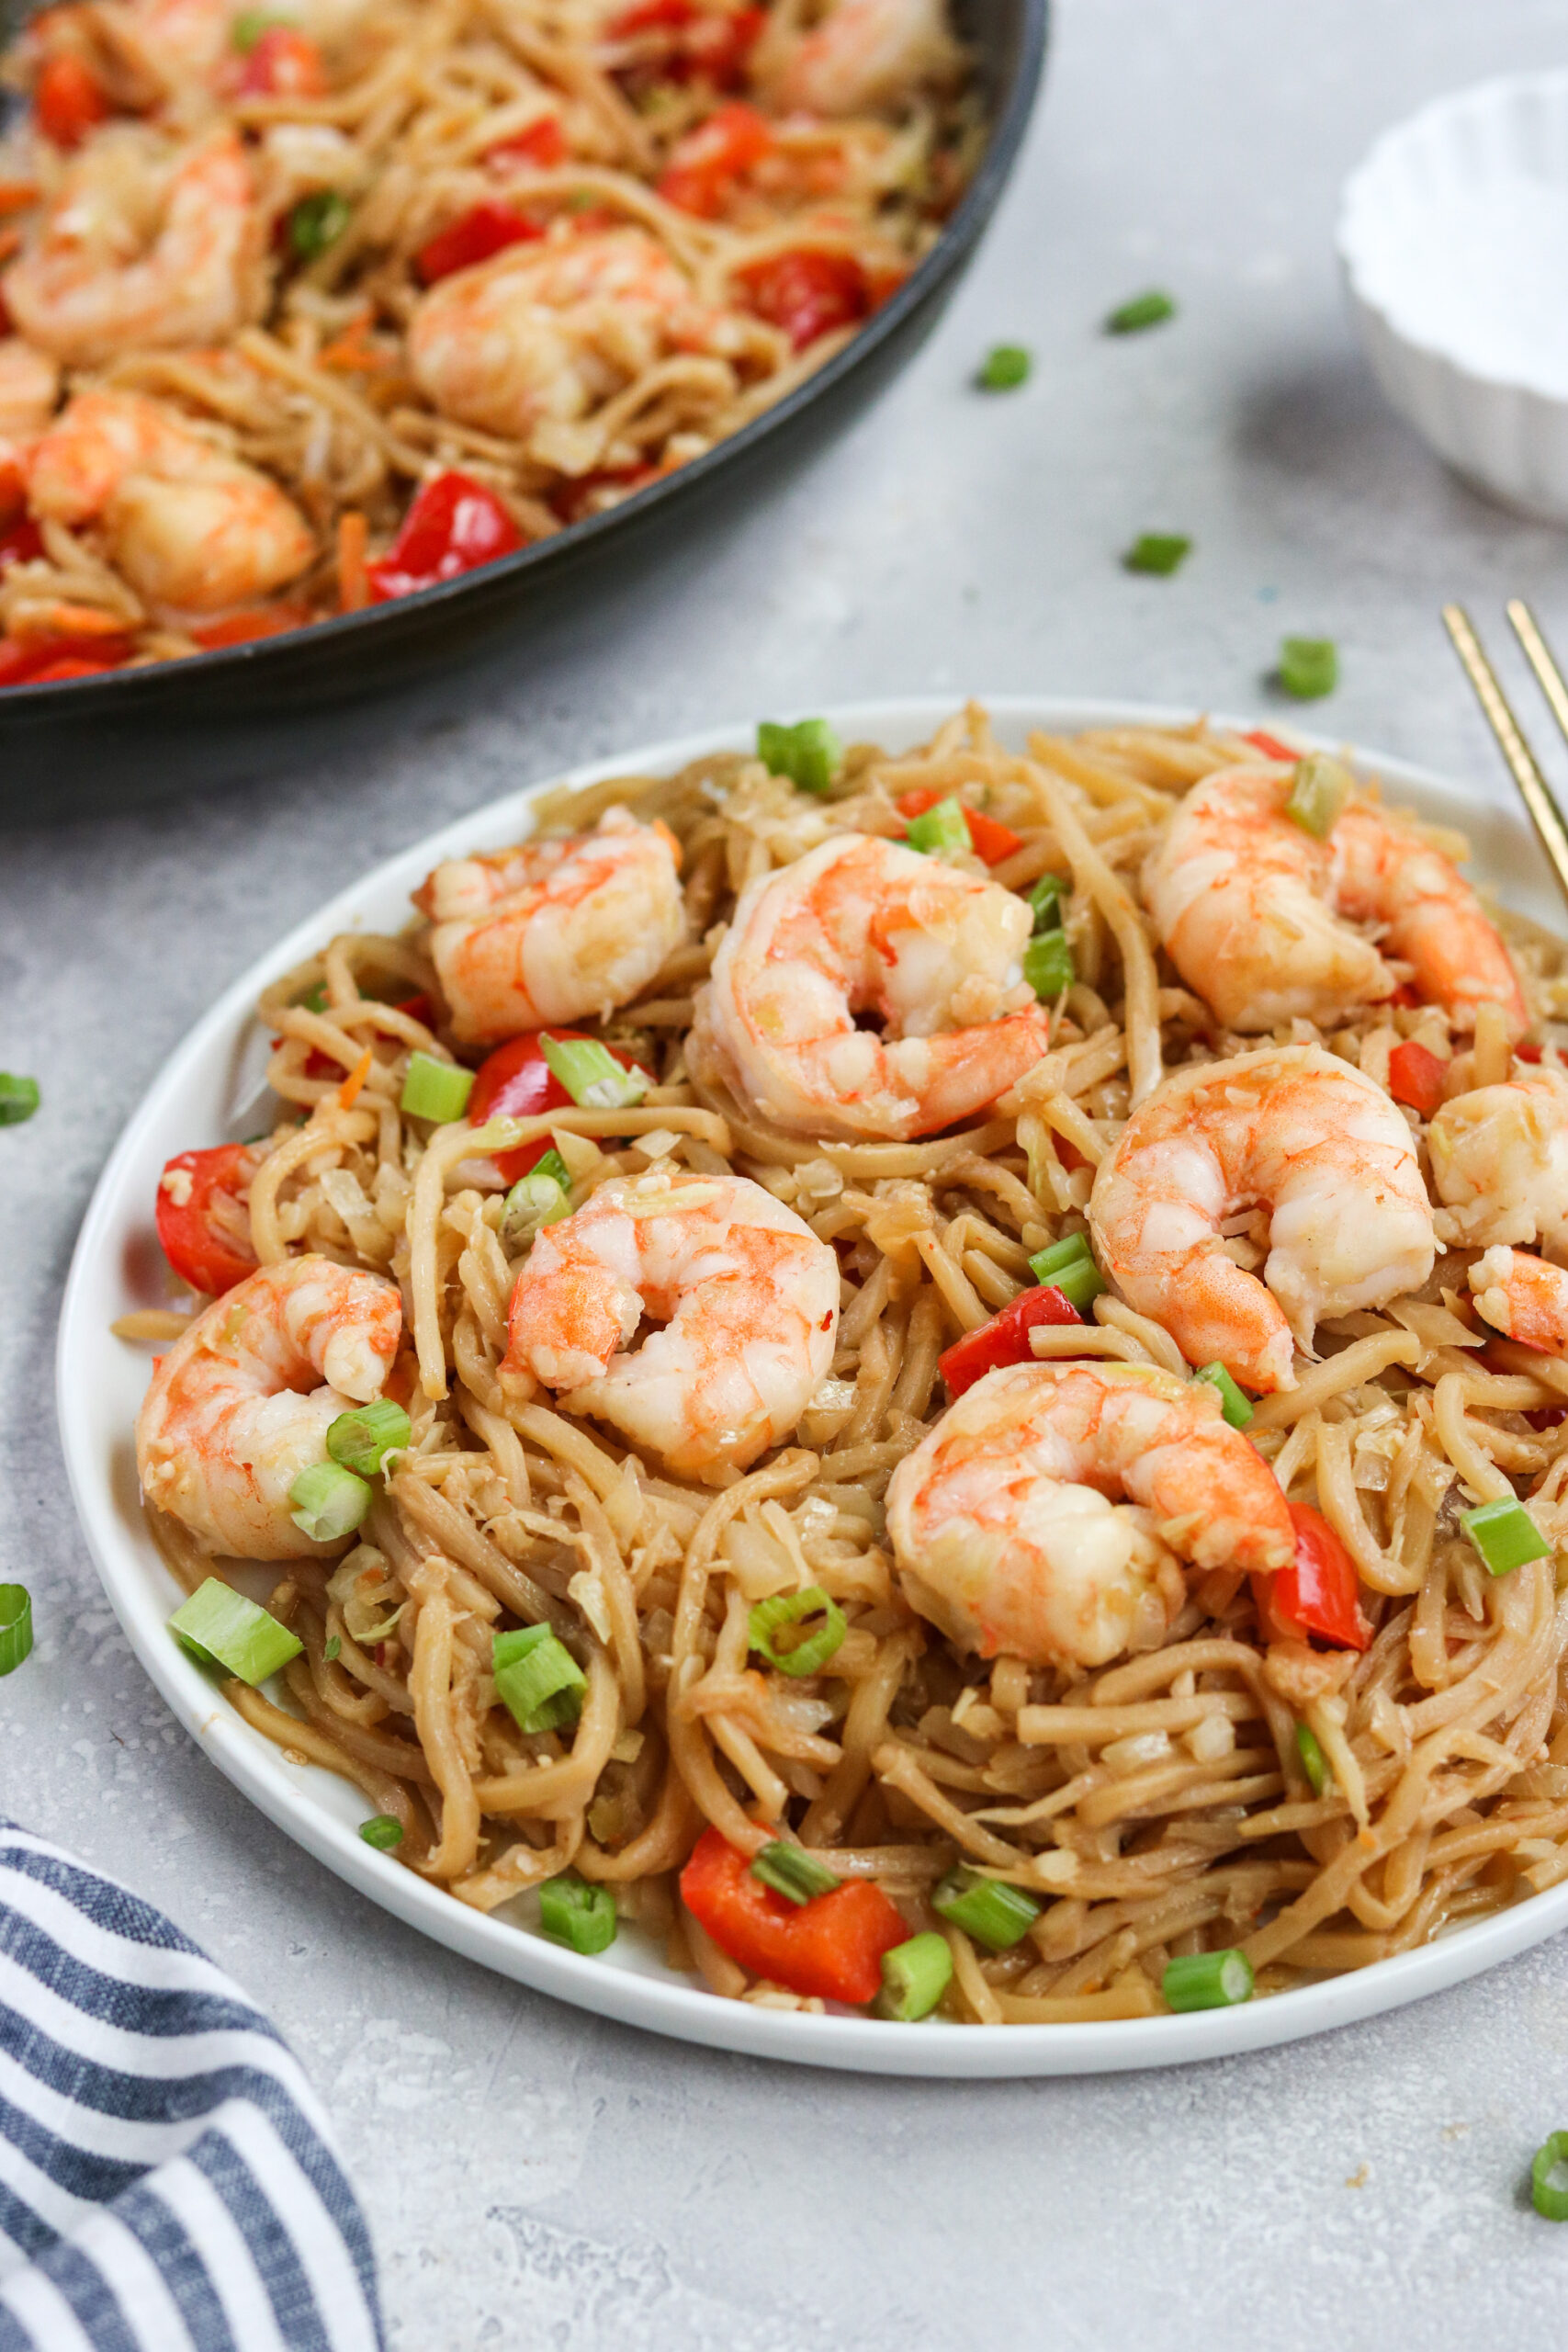 Shrimp lo mein with hearts of palm noodles